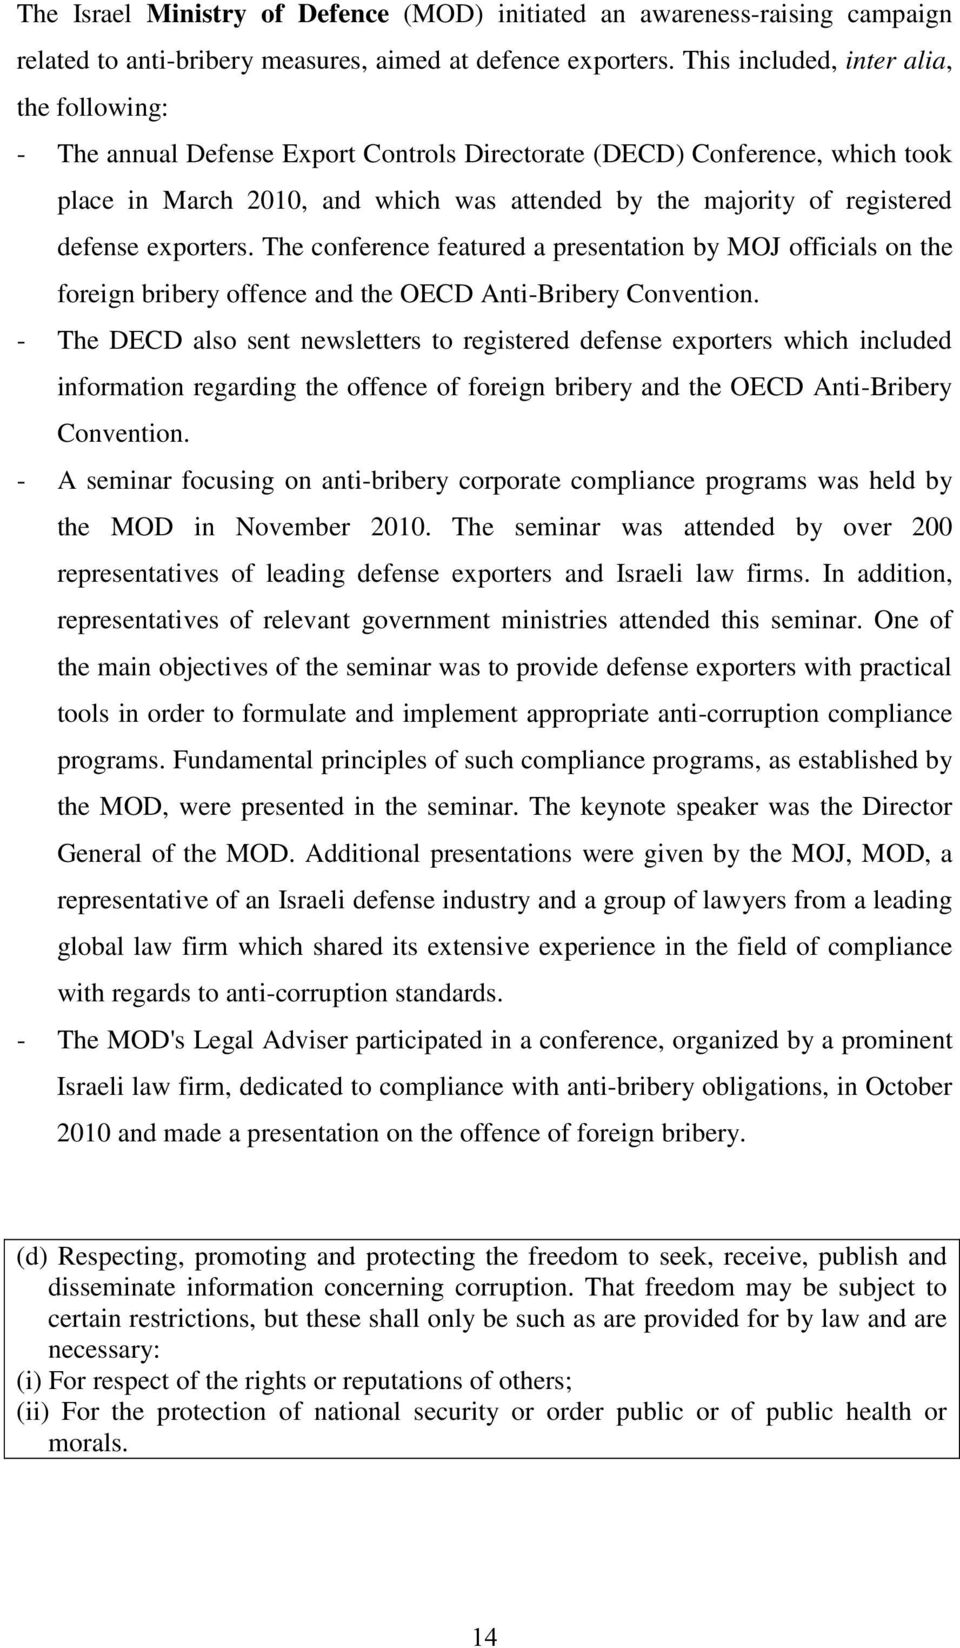 defense exporters. The conference featured a presentation by MOJ officials on the foreign bribery offence and the OECD Anti-Bribery Convention.